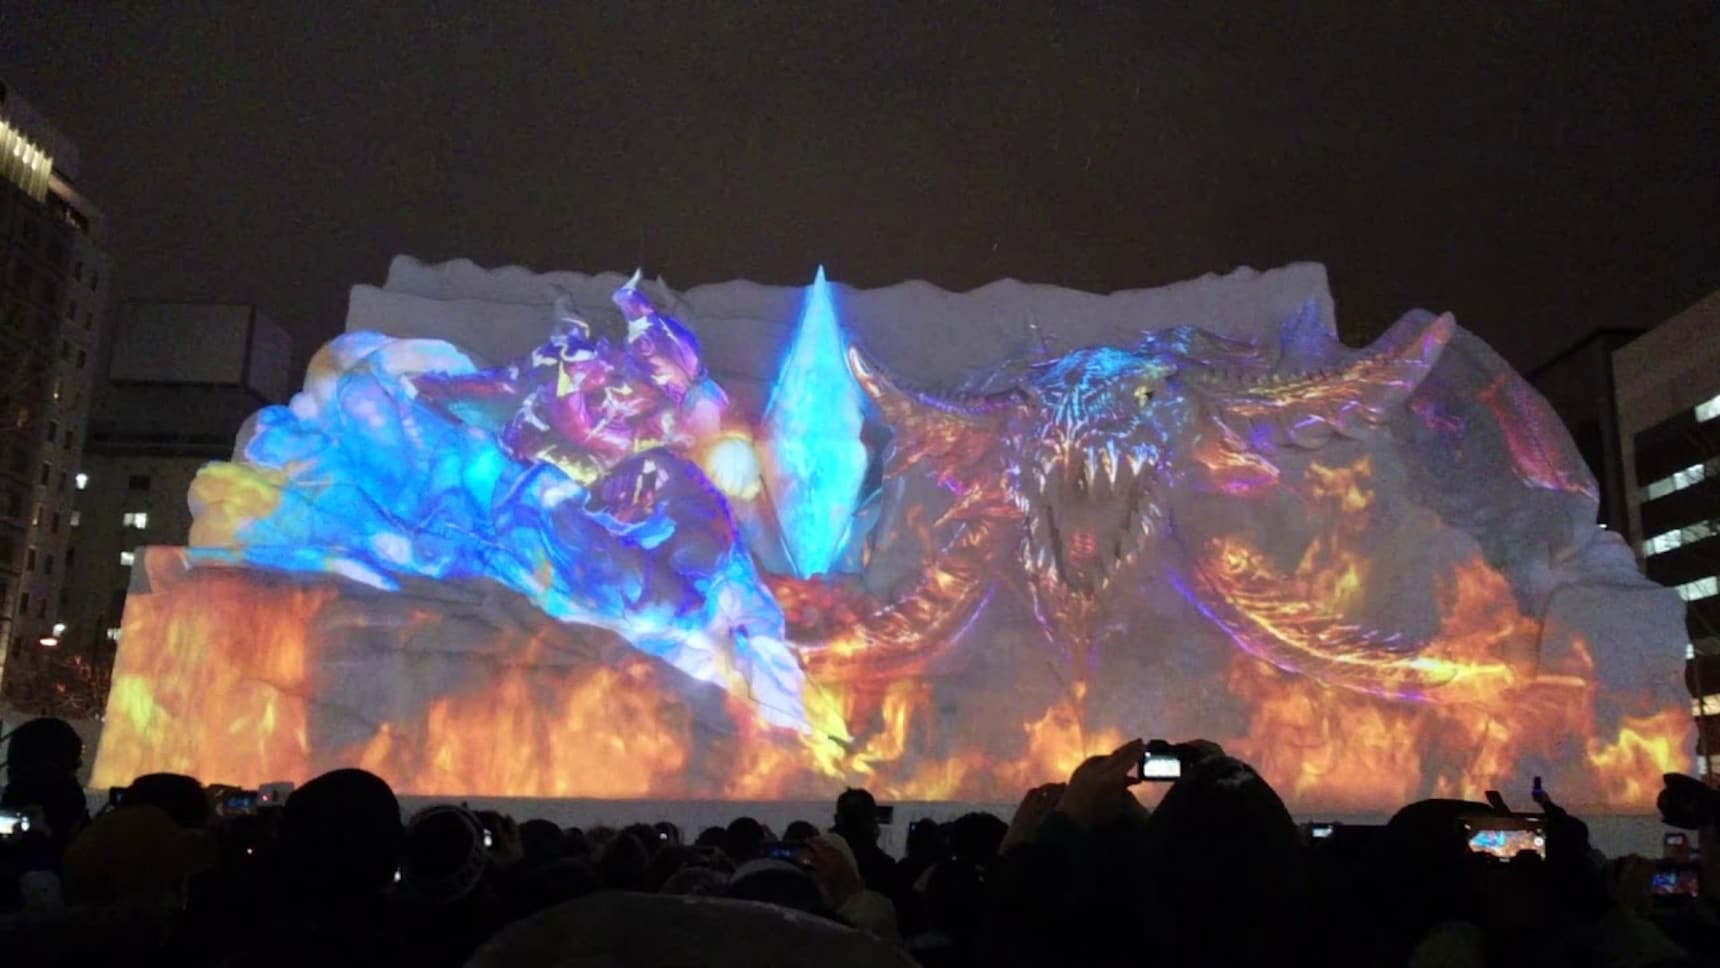 Final Fantasy Snow Sculpture Heats up Hokkaido